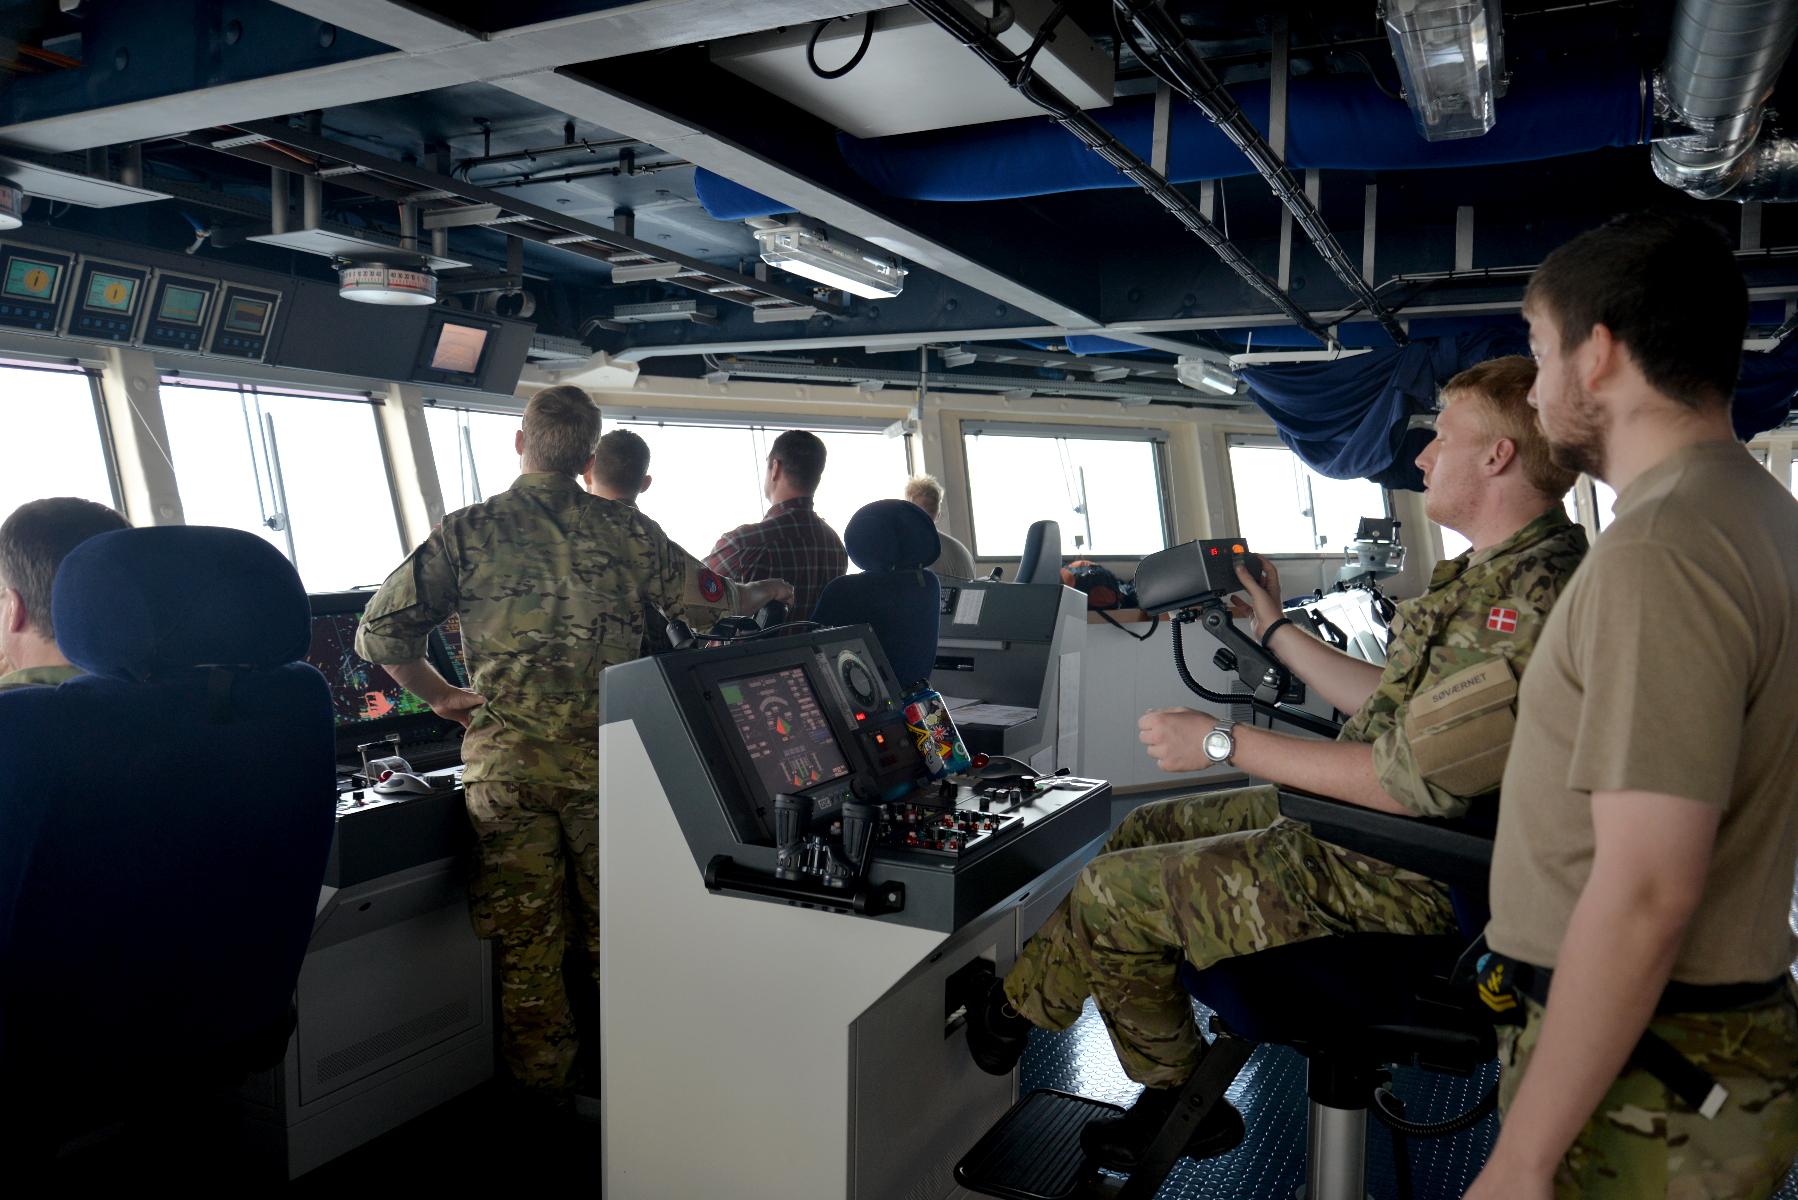 The helmsman sits at a raised console in the center of the pilothouse, steering with a joystick.